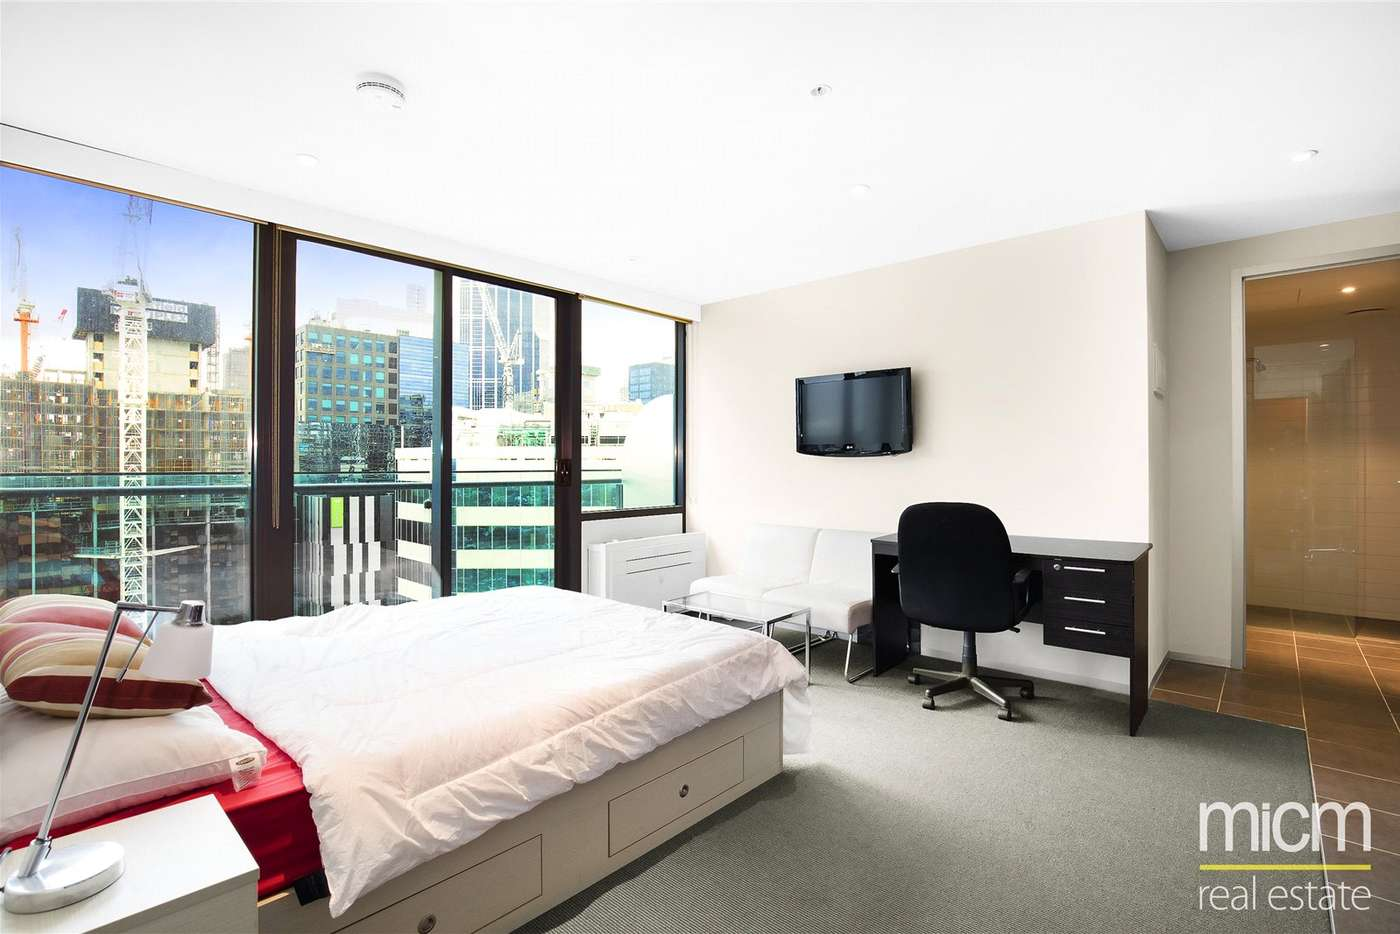 Main view of Homely studio listing, 2707/181 ABeckett Street, Melbourne VIC 3000